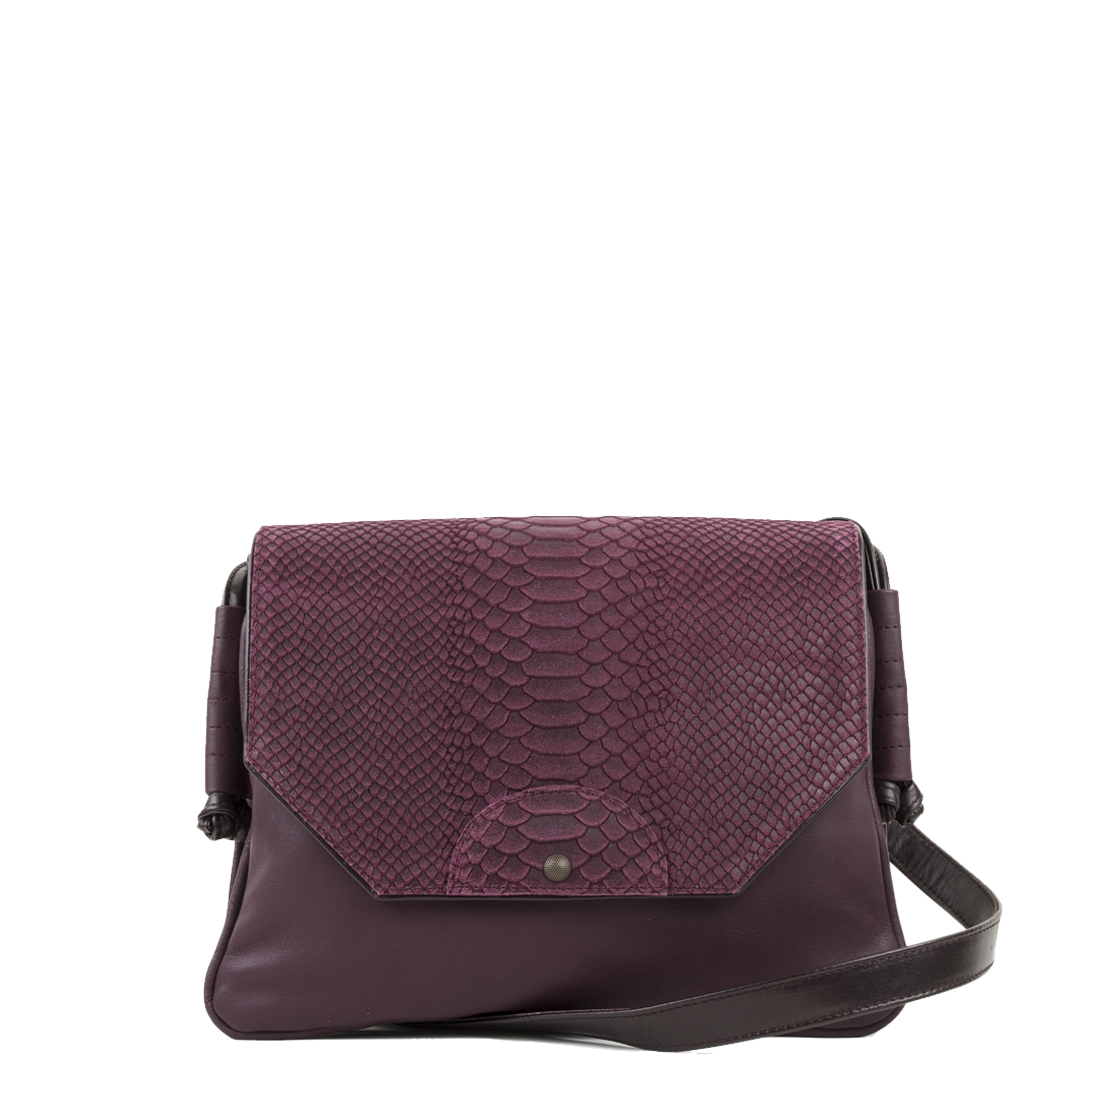 Annie Plum Anaconda Satchel Bag